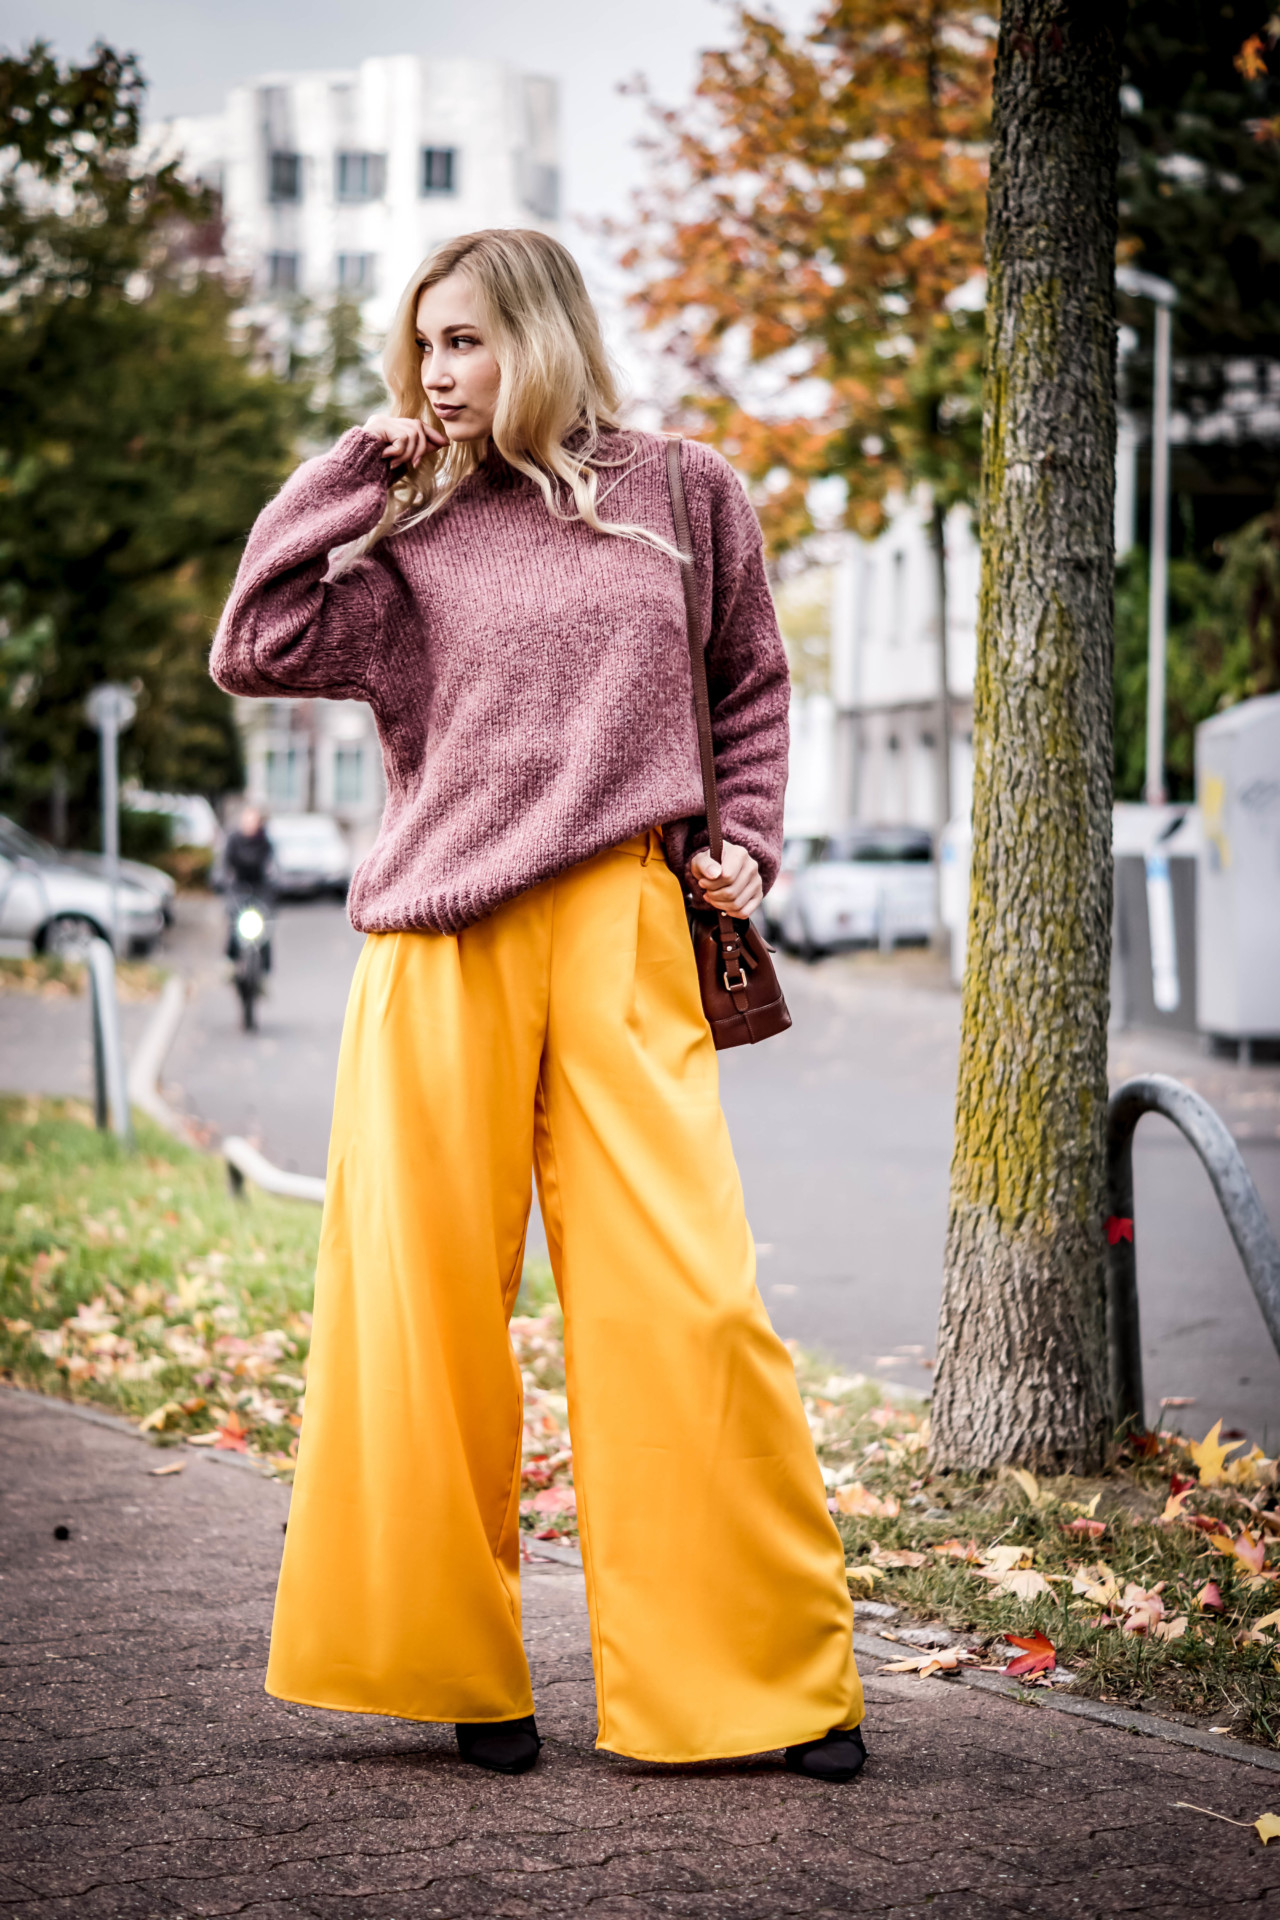 dbkstylez_na-kd_palazzo_pants_influencer_fashion